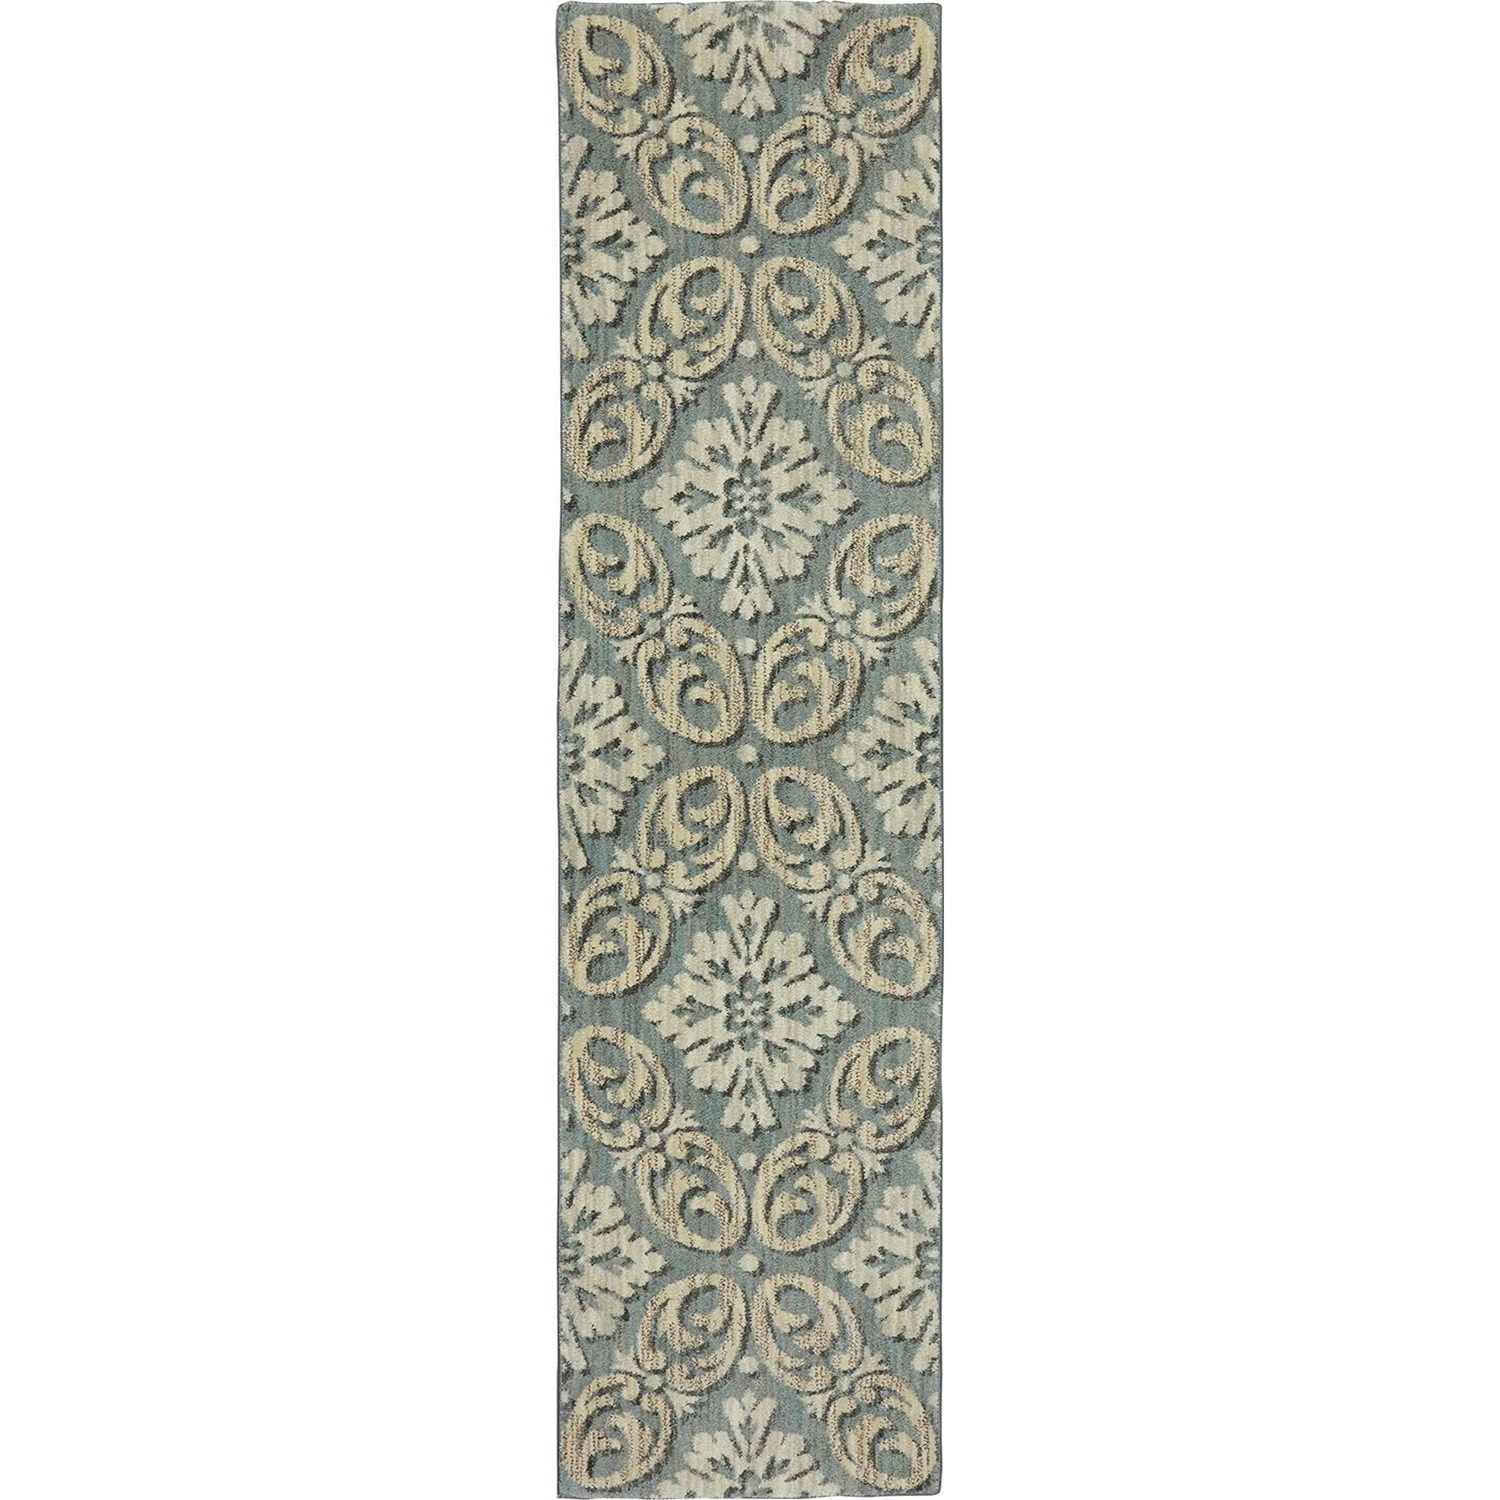 Karastan Rugs Euphoria 2'1x7'10 Findon Bay Blue Rug Runner - Item Number: 90271 55002 025094